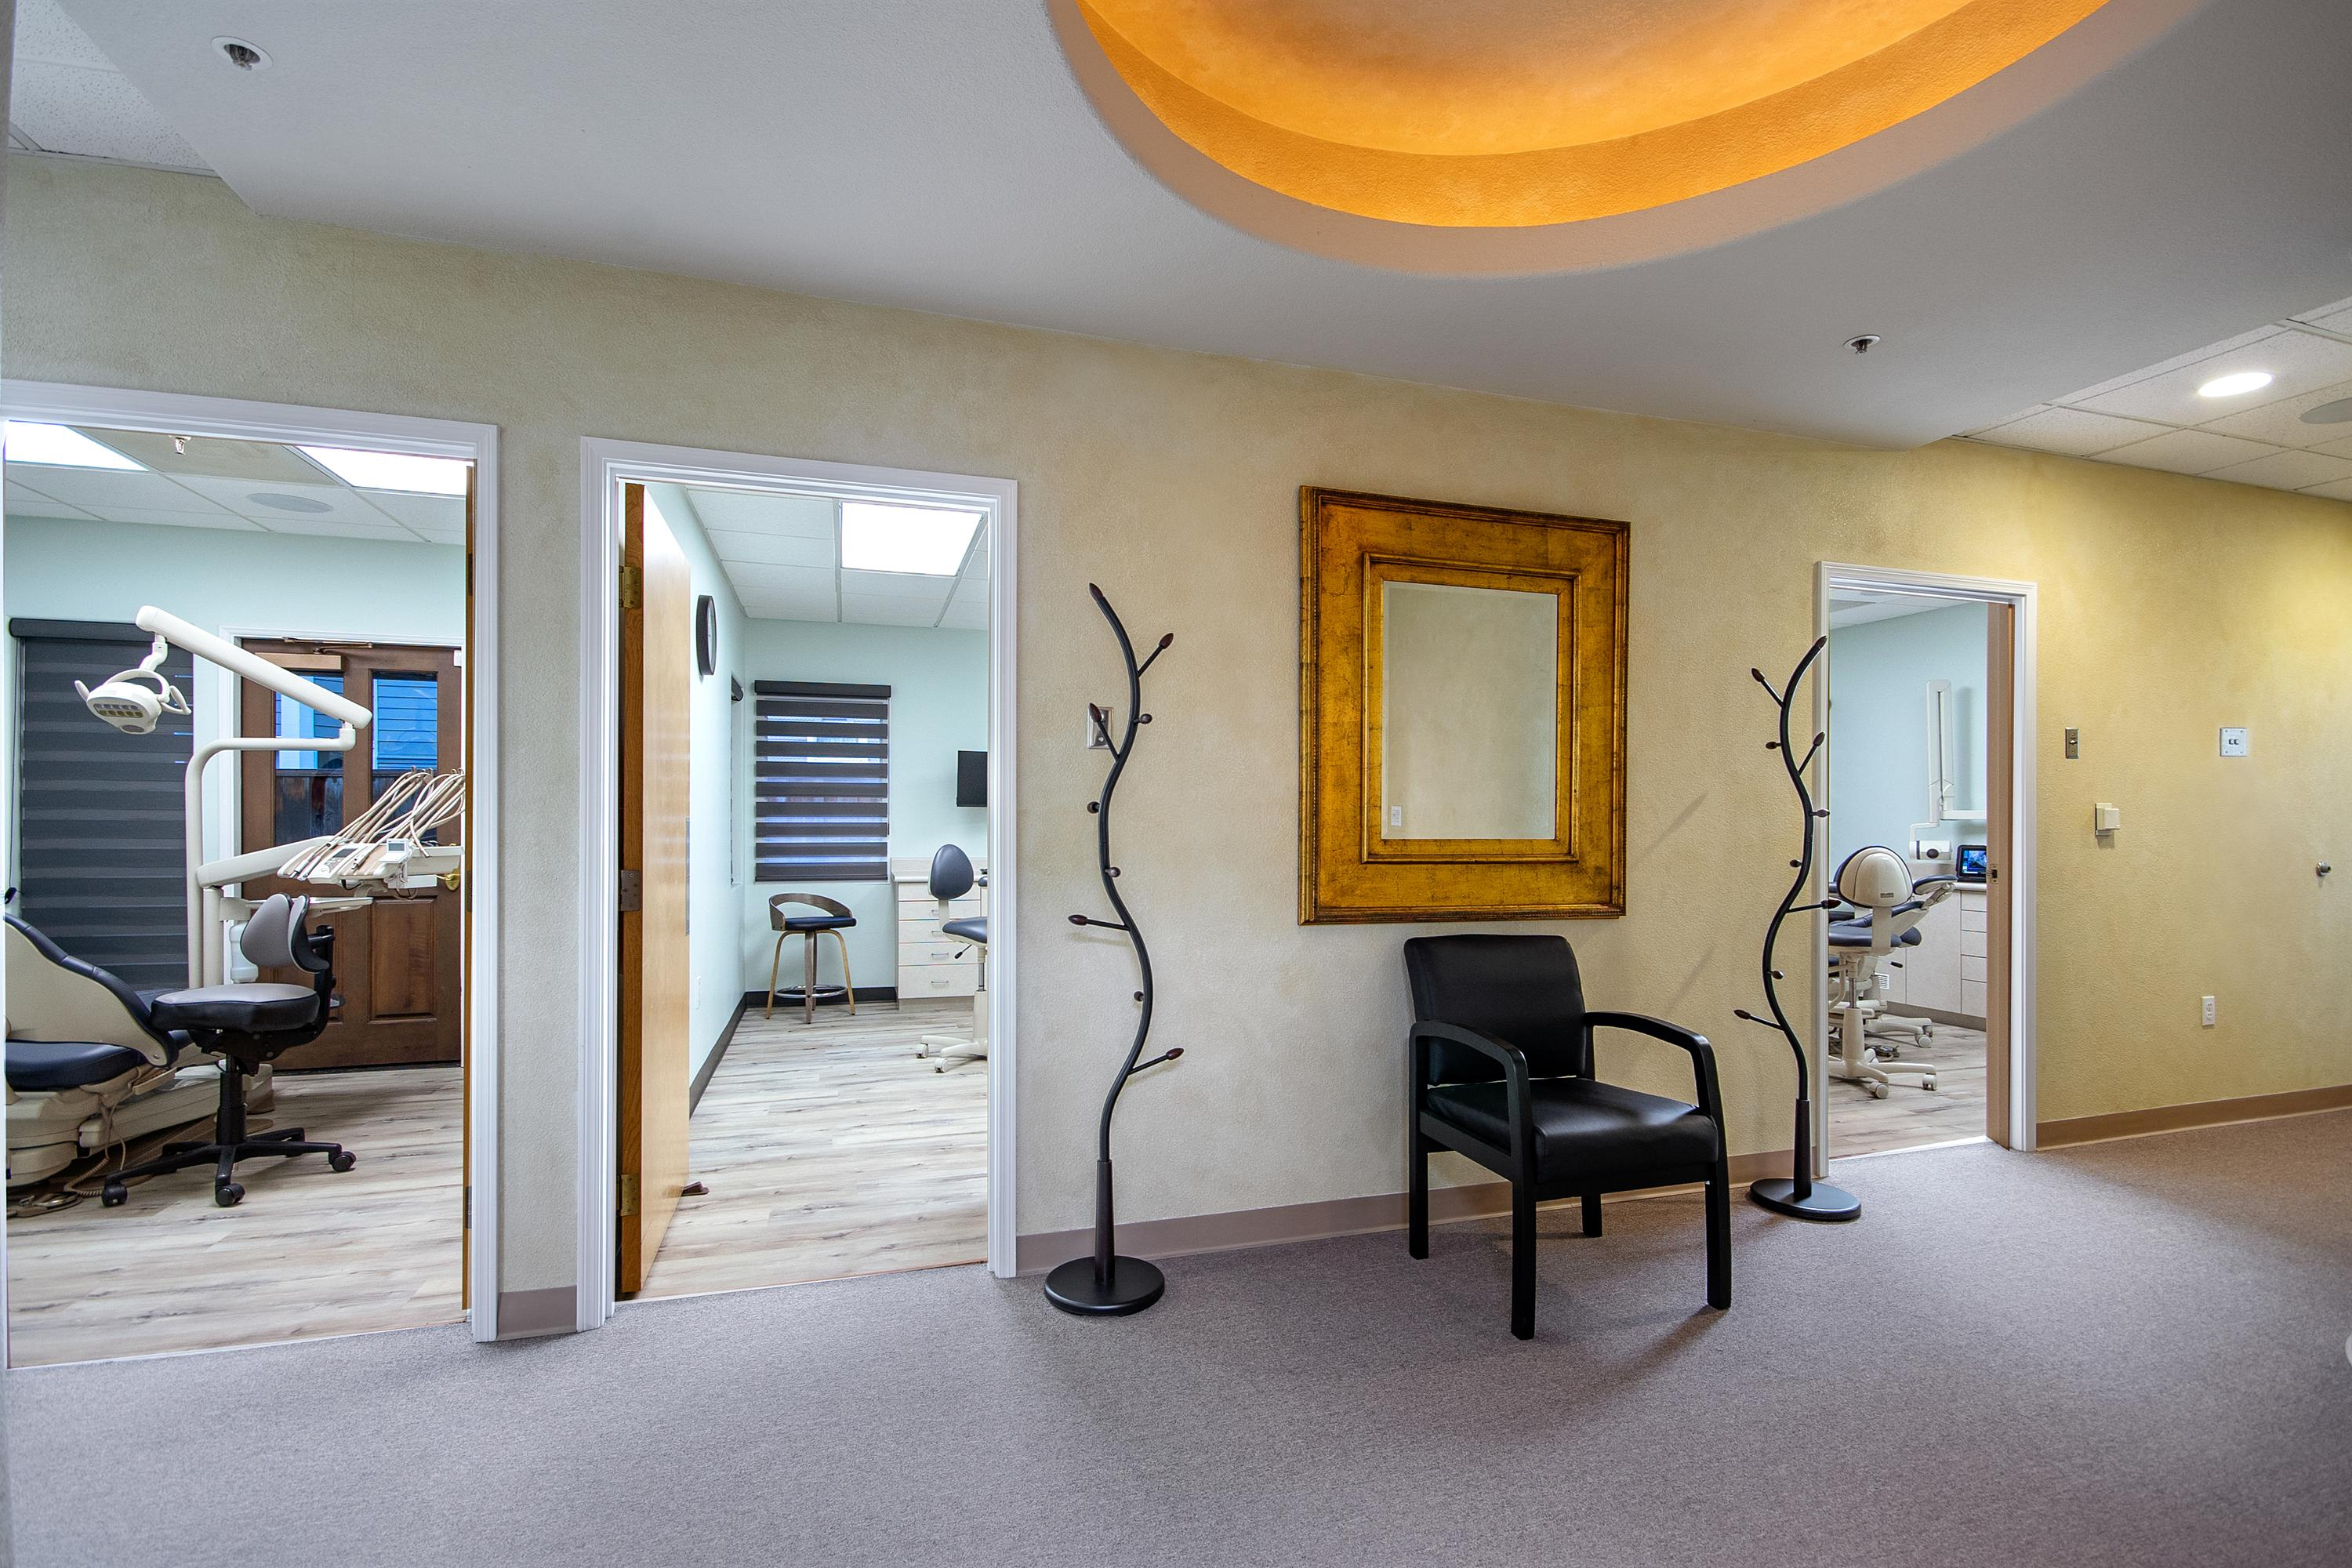 Golden-State-Dentistry-Office-Tour-Operatories-Hallway